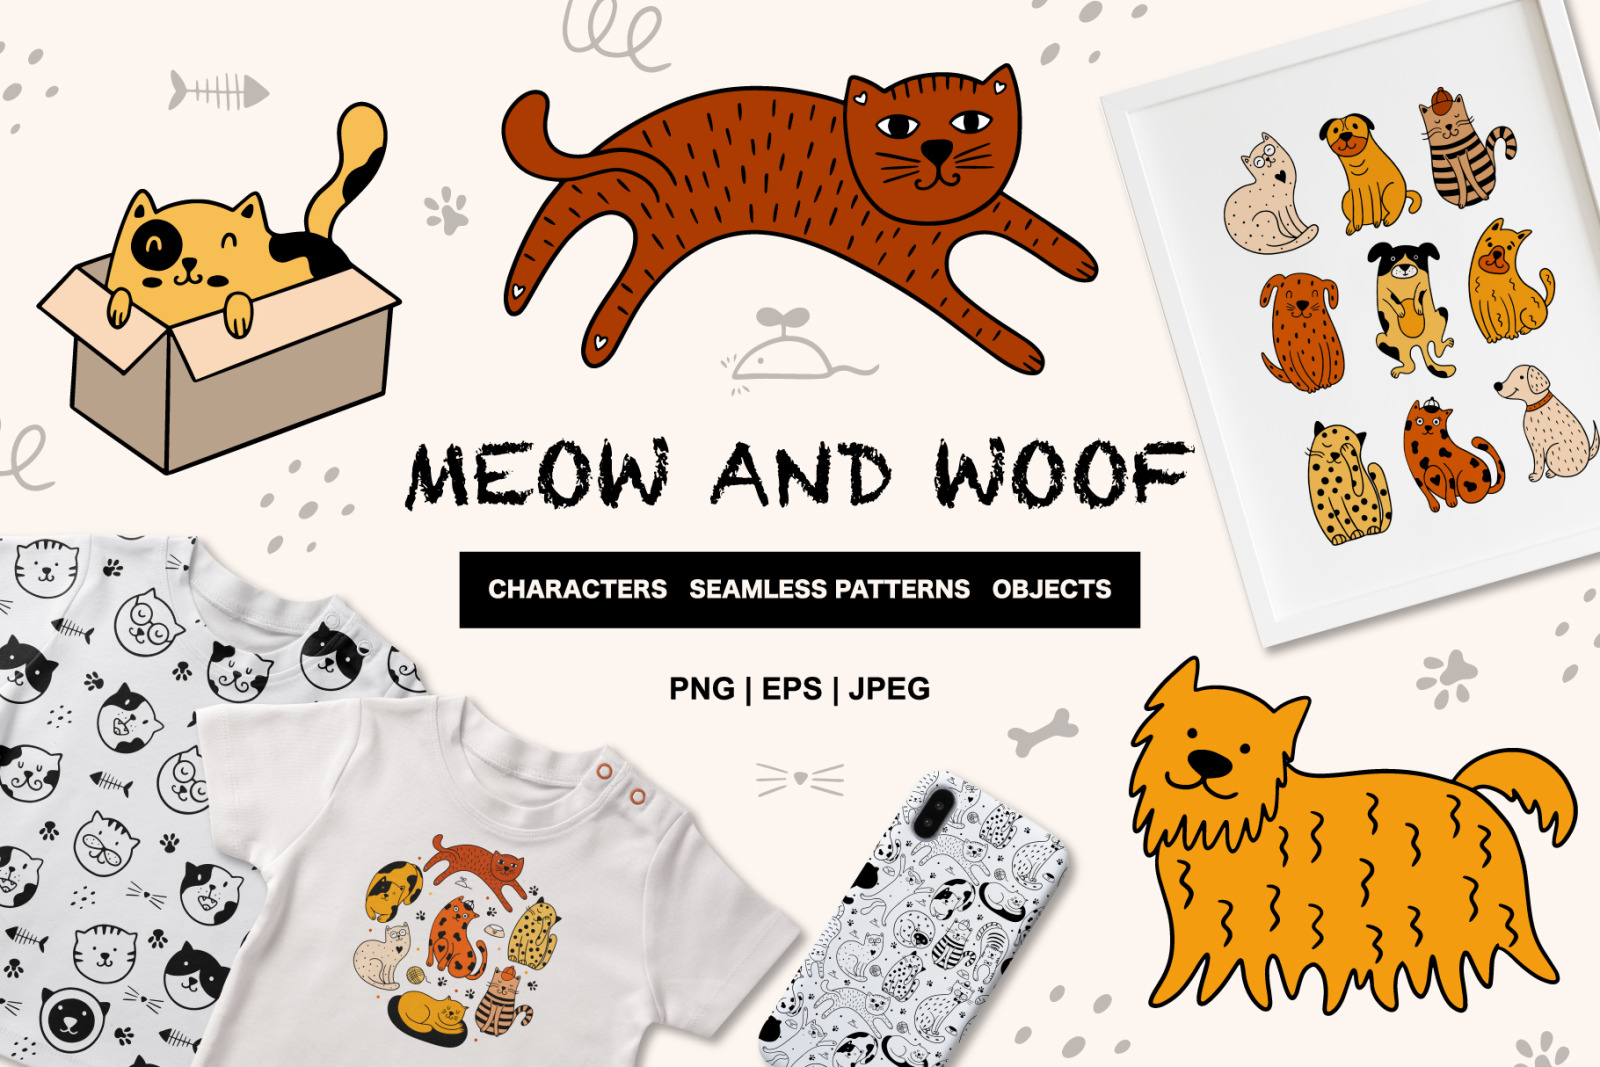 MEOW and WOOF!!!